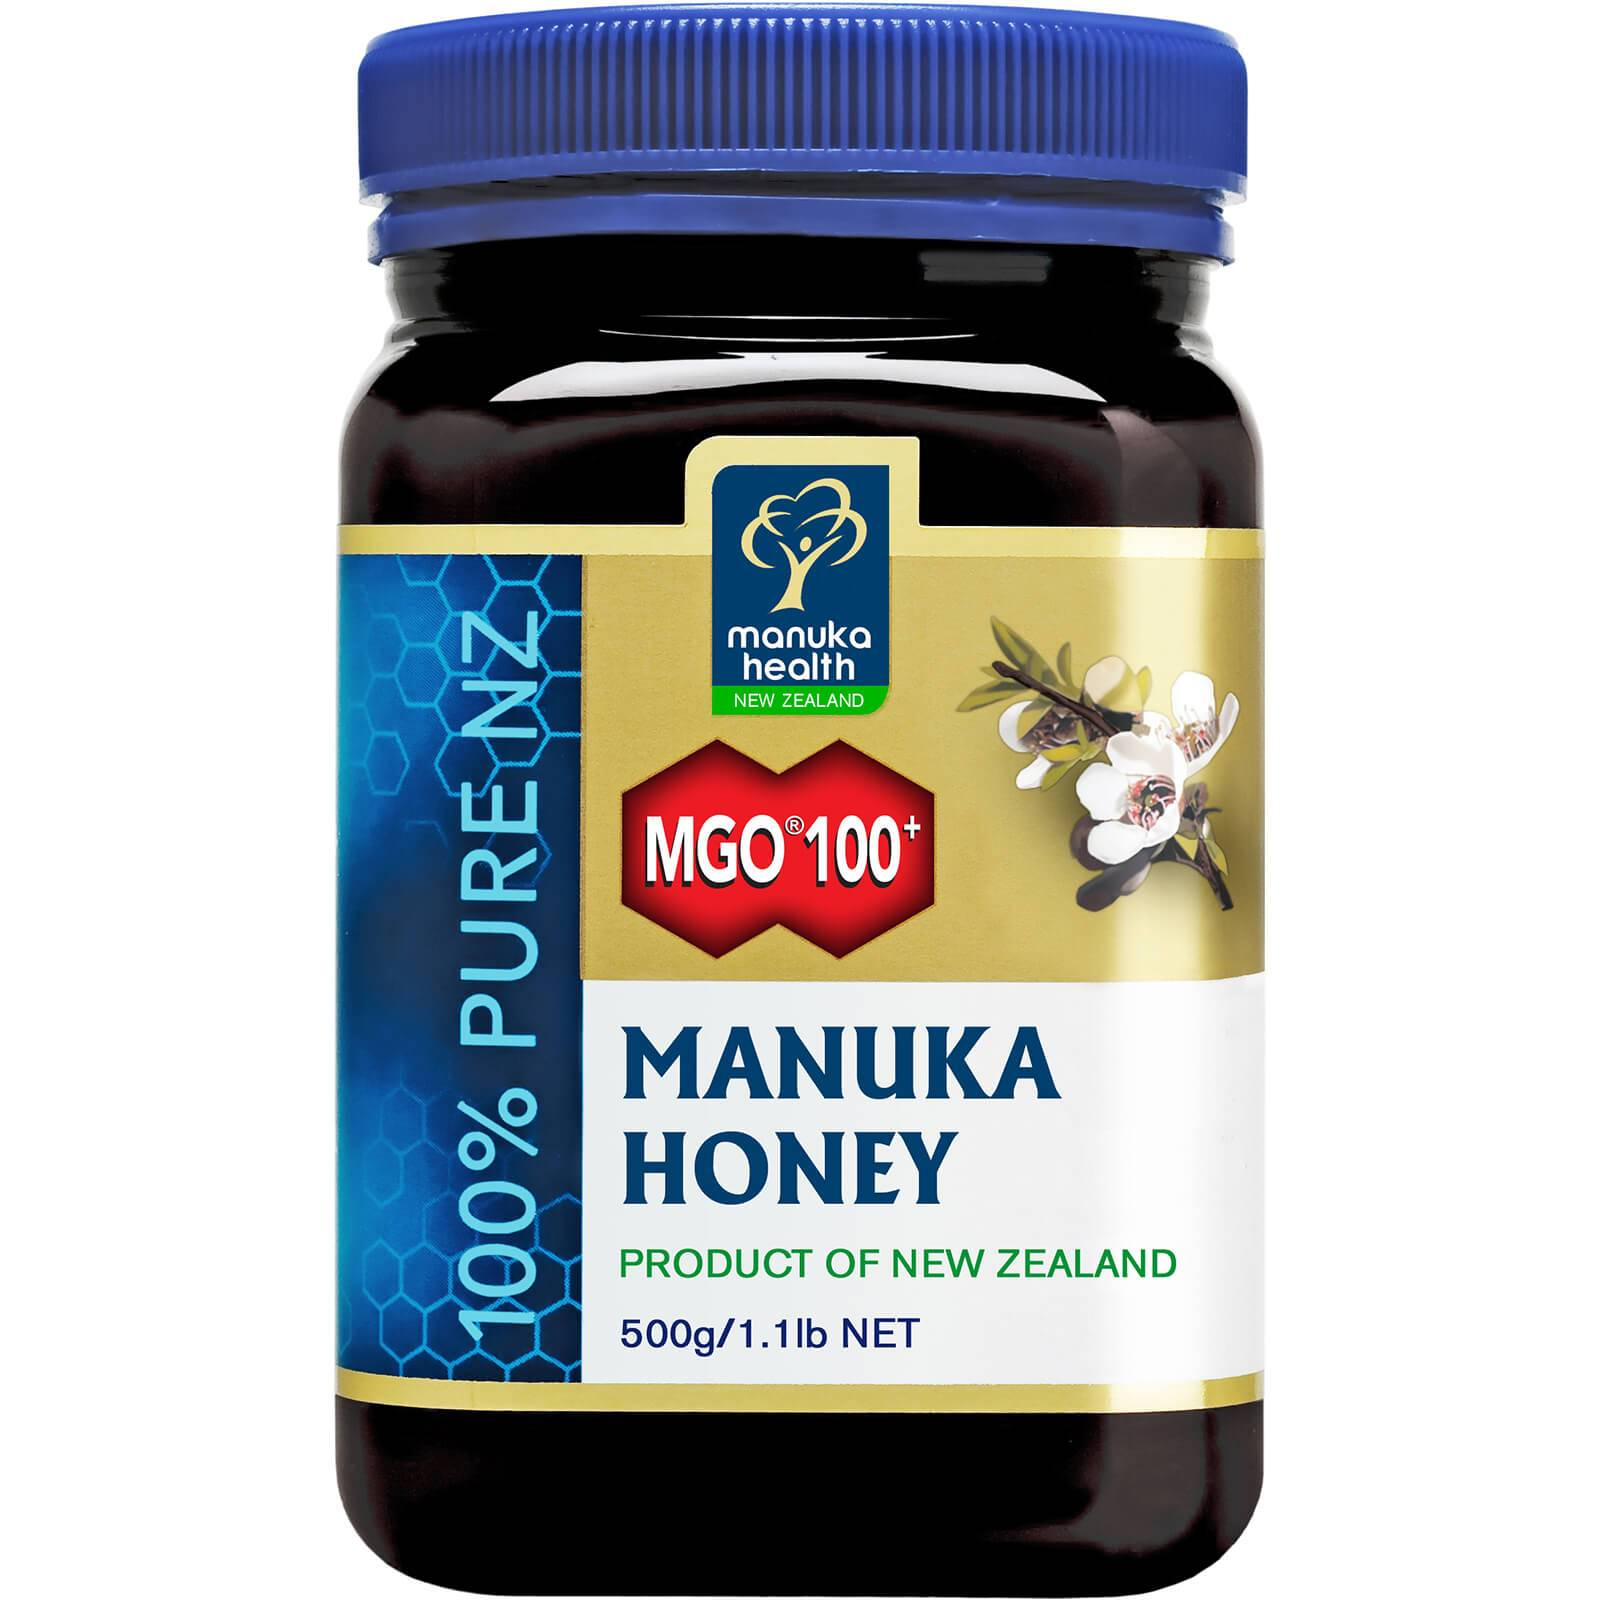 Manuka Health New Zealand Ltd Miel de Manuka Pur MGO 100+ Manuka Health - 500g